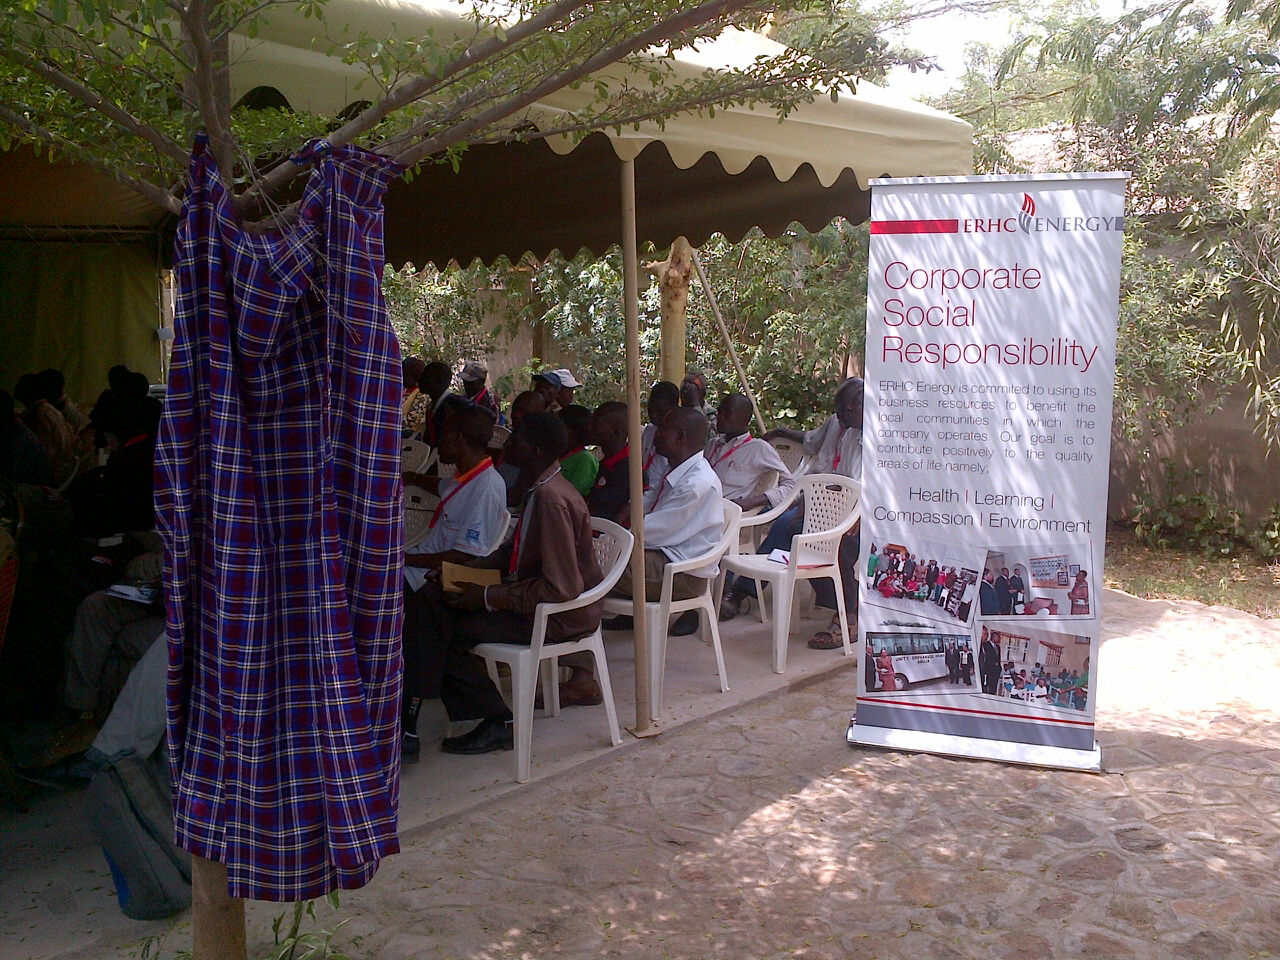 ERHC Energy Meetings with Community and Government Leaders in Turkana County, Northern Kenya